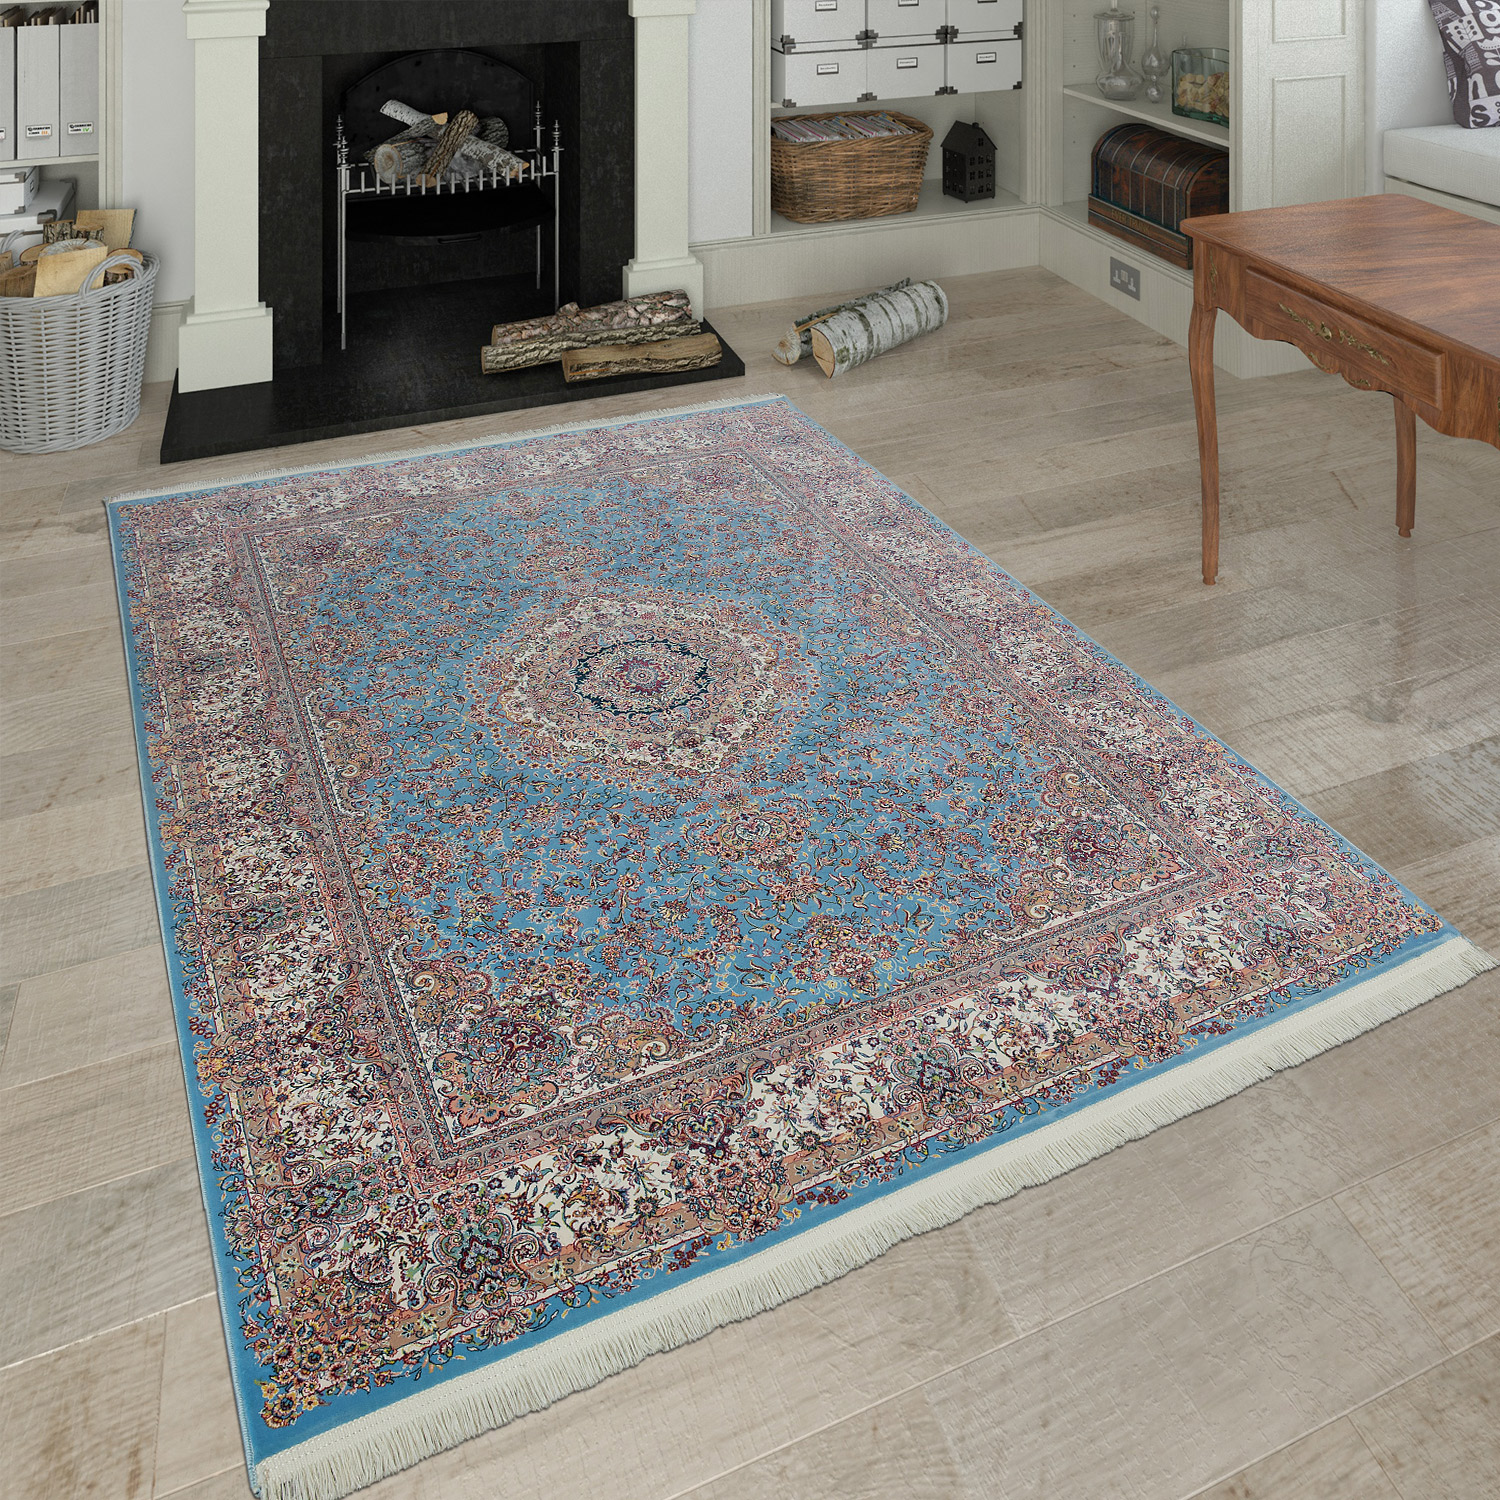 orientalischer acryl teppich ornamente beige blau teppiche orient optik. Black Bedroom Furniture Sets. Home Design Ideas